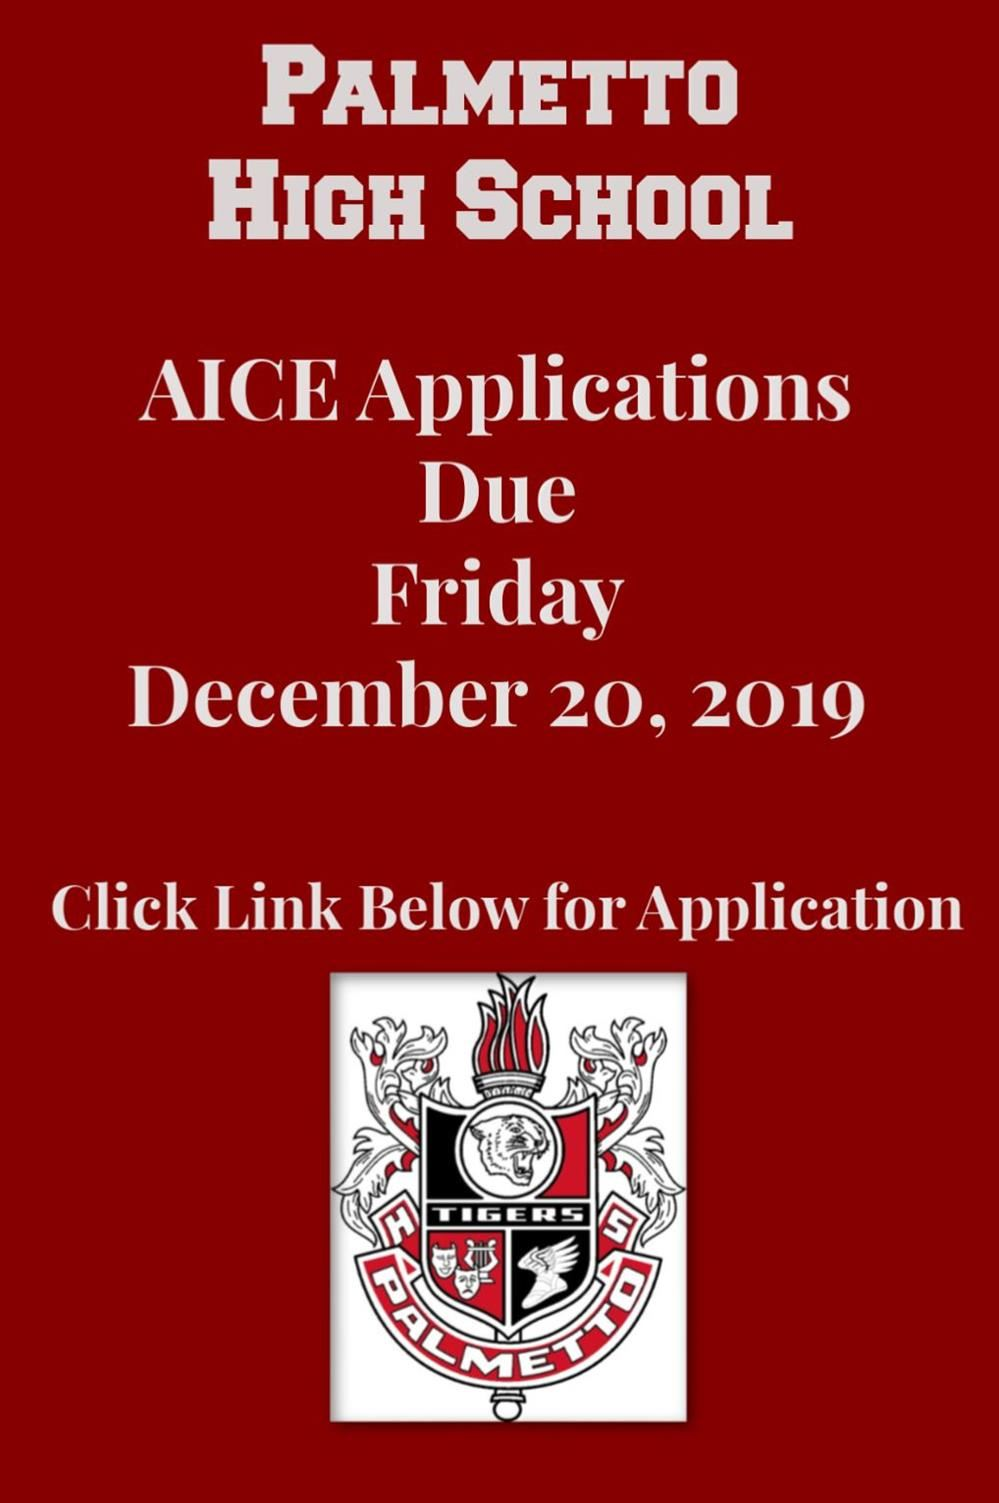 AICE Applications Due 12/20